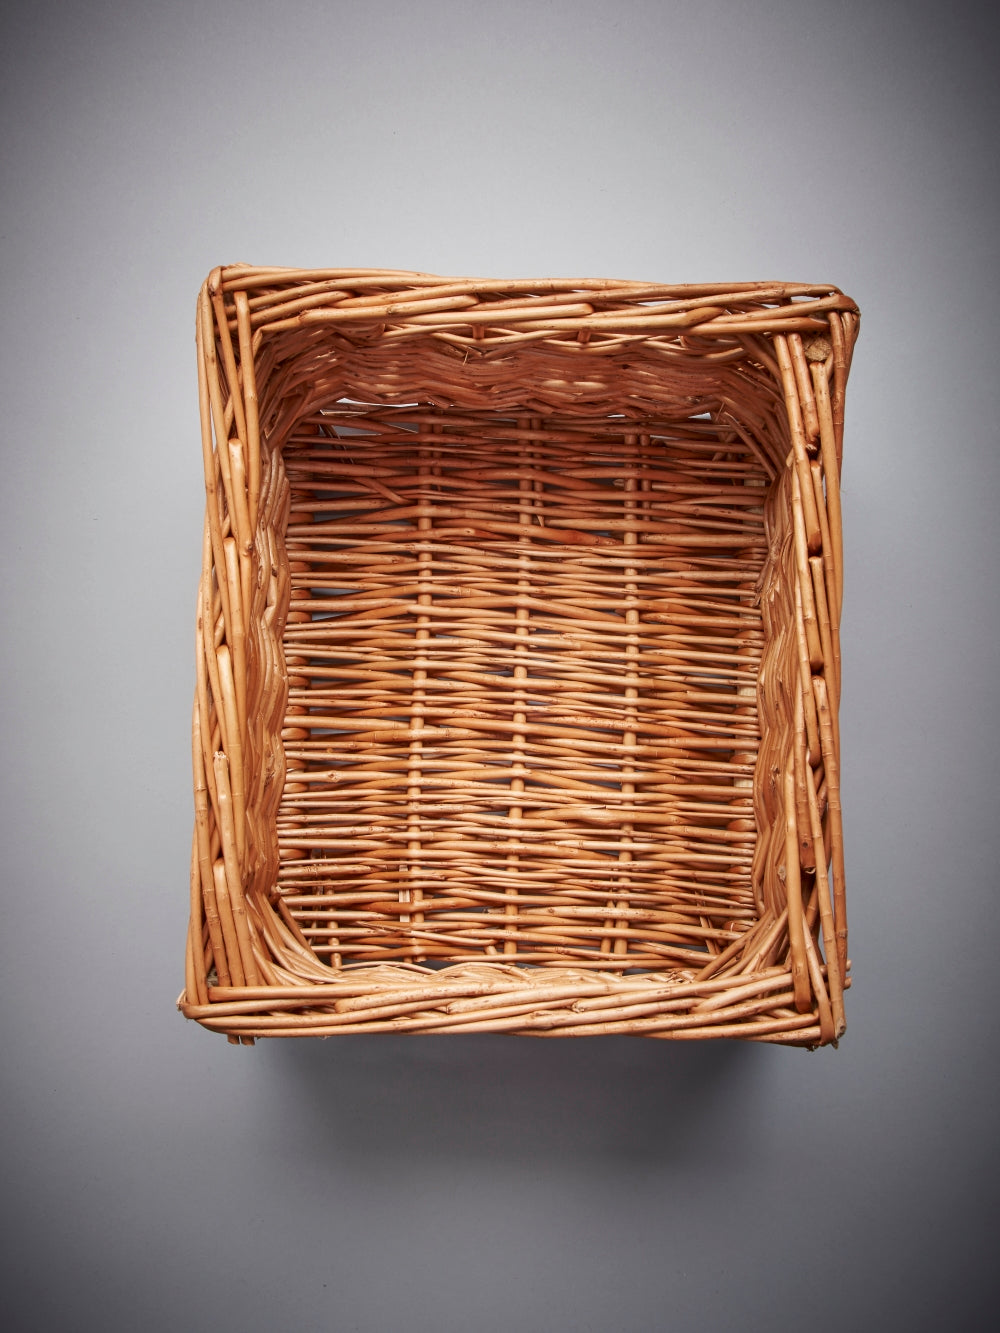 Willow Wicker Baskets